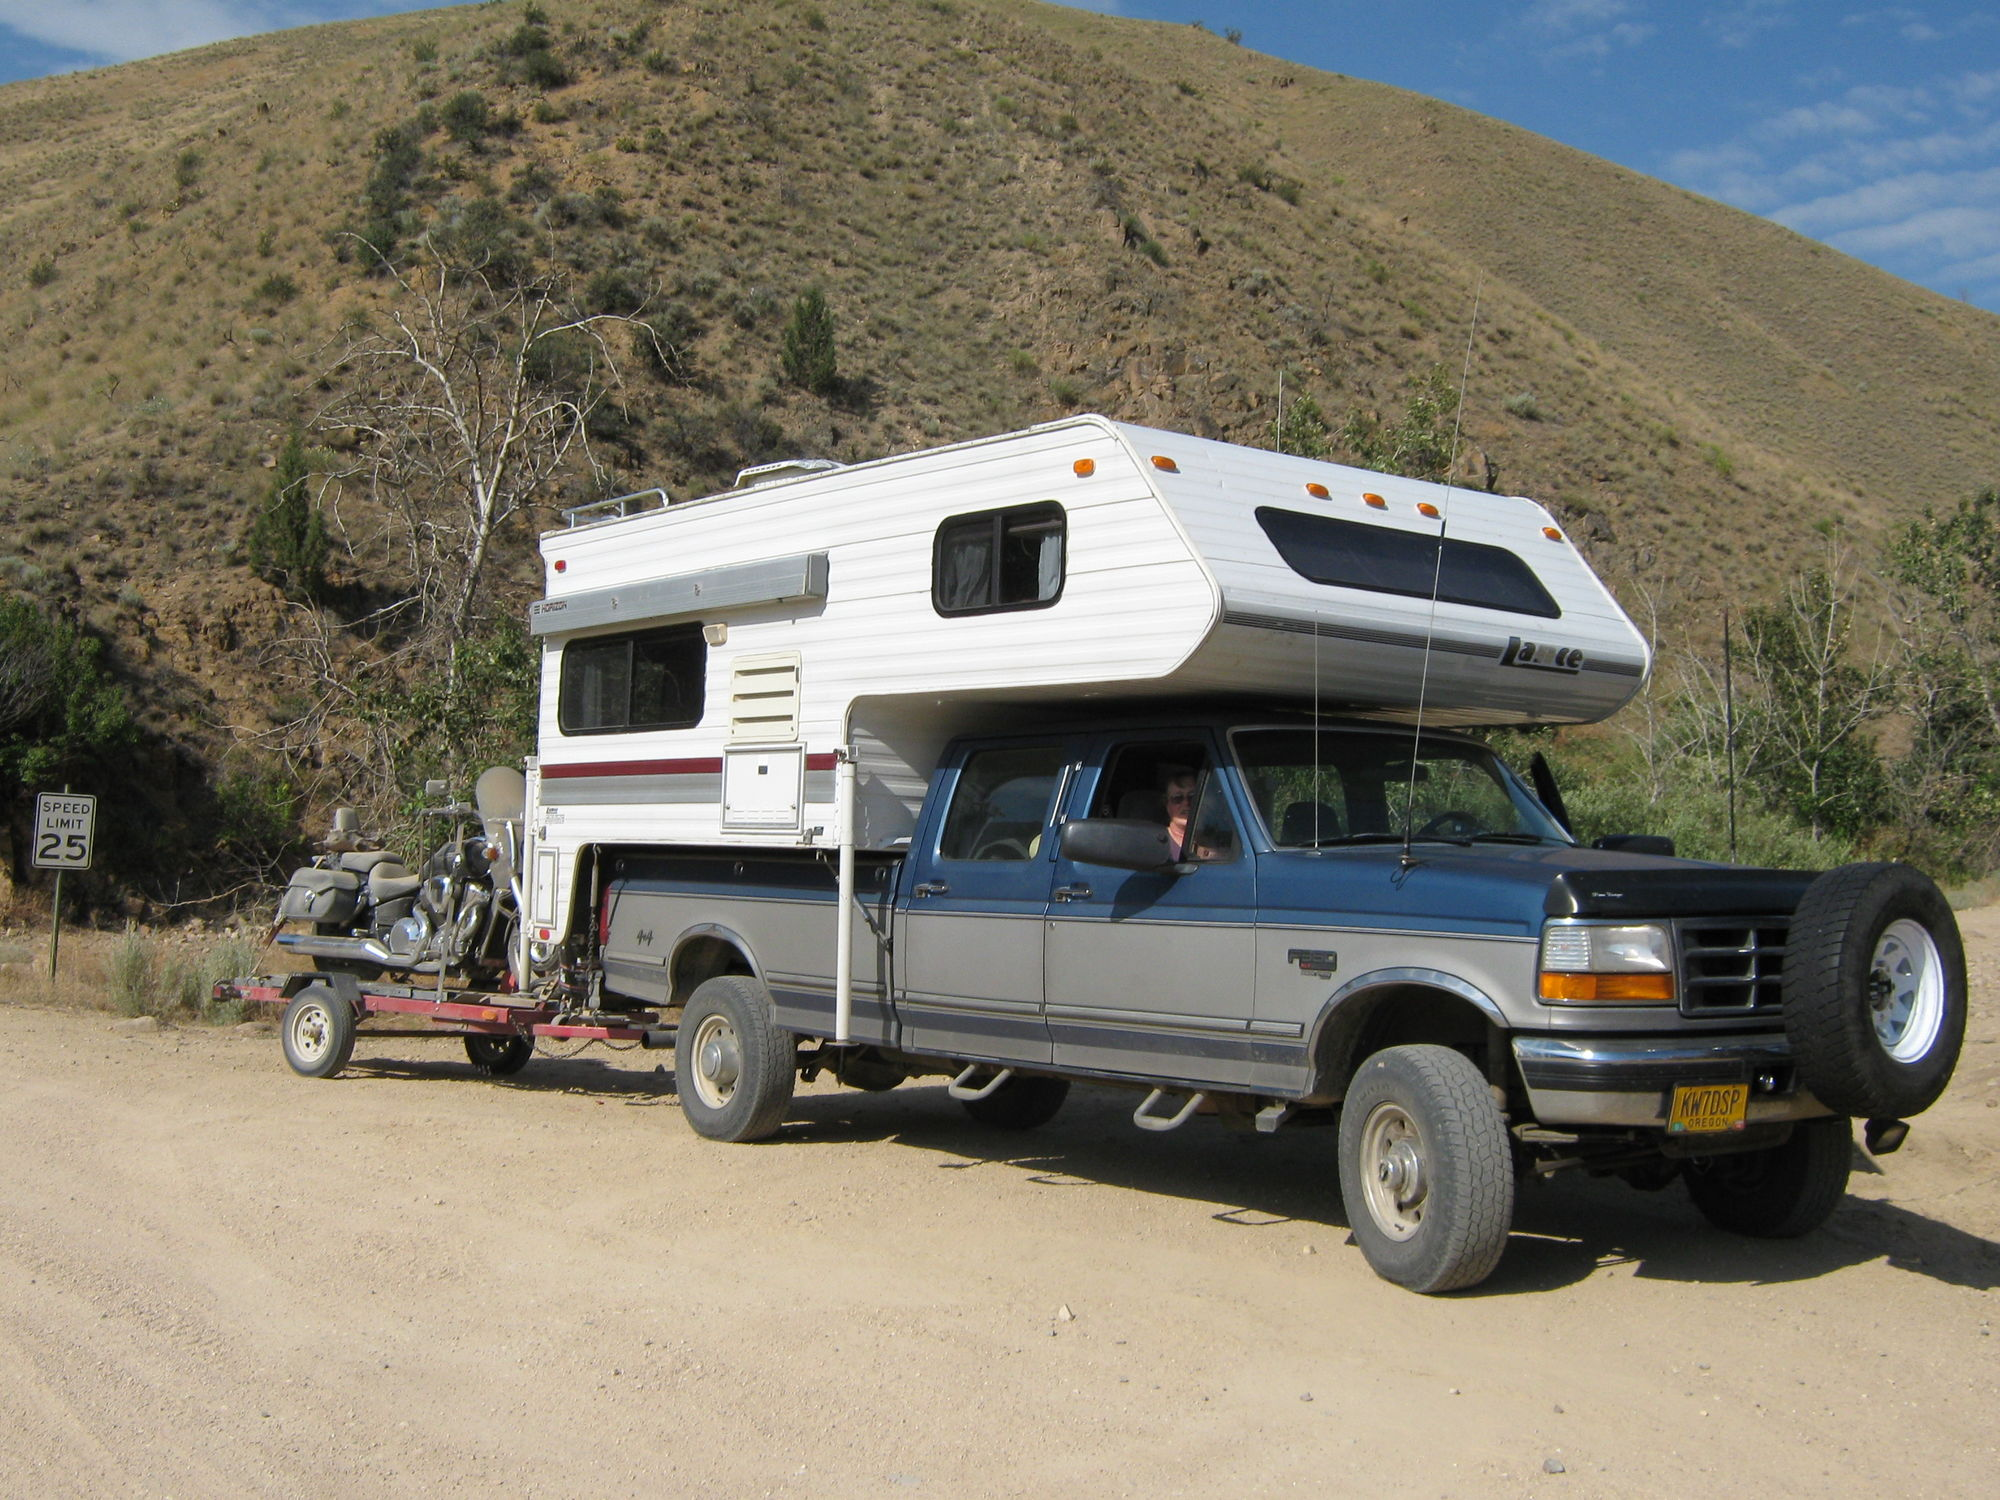 That seems low my 7 3l got 21 highway empty highway gears installed towing the 12 000 5th wheel i got 12 average with really good on flat freeway